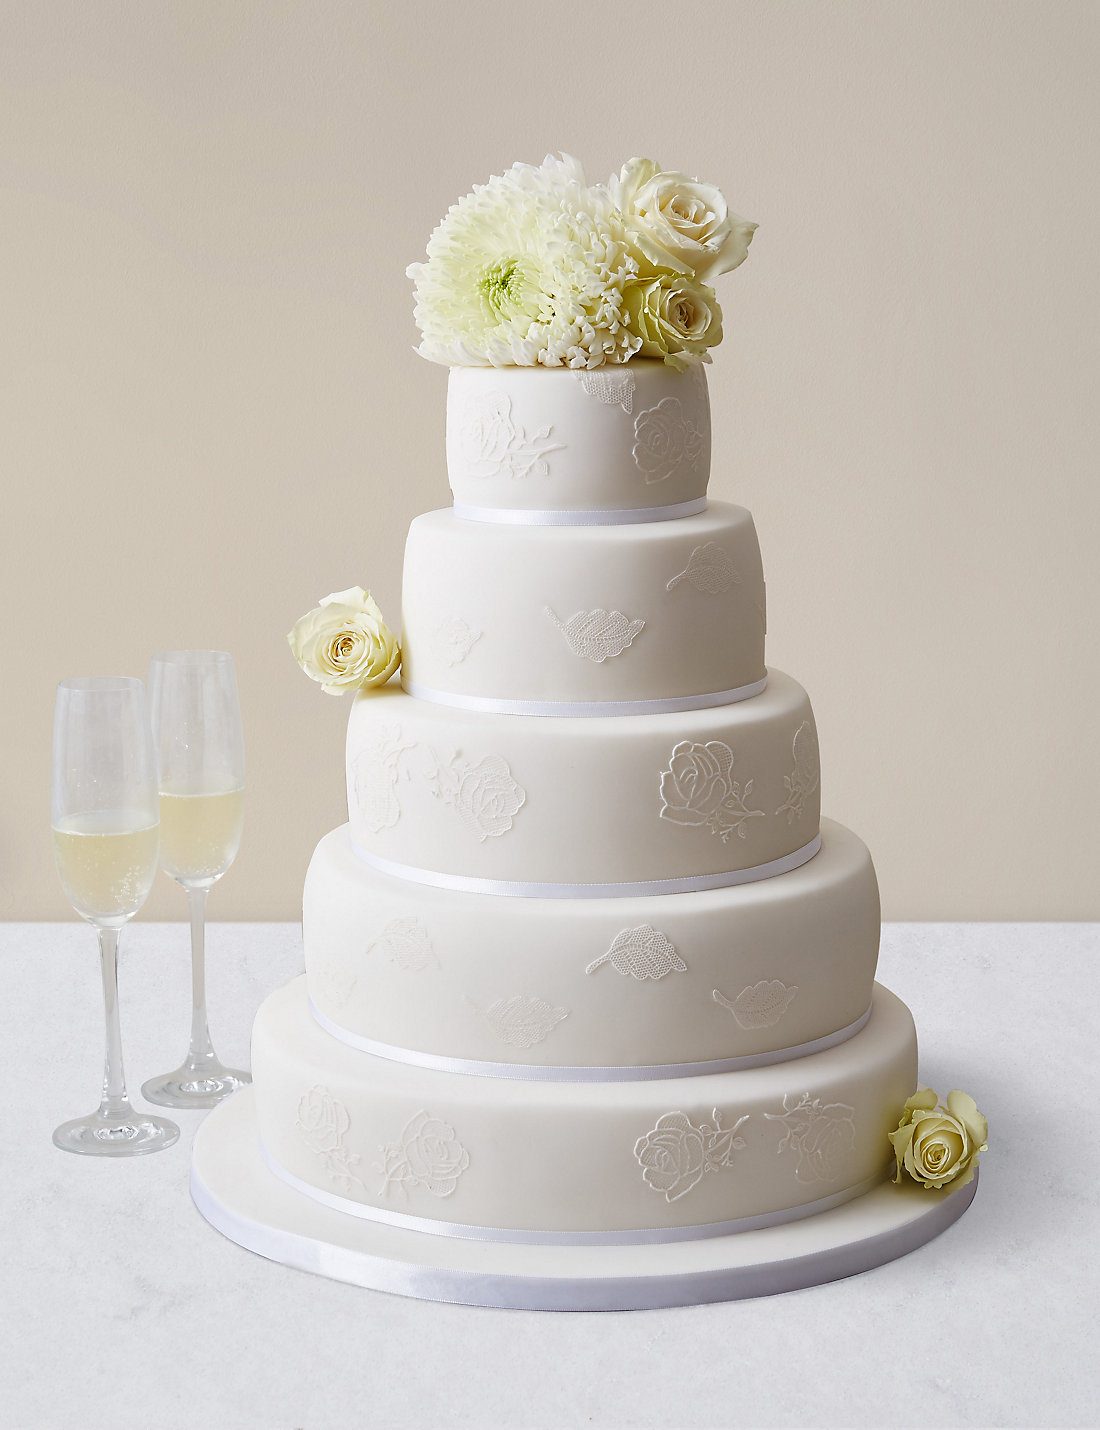 Embroidered Lace Wedding Cake White Icing Serves 150